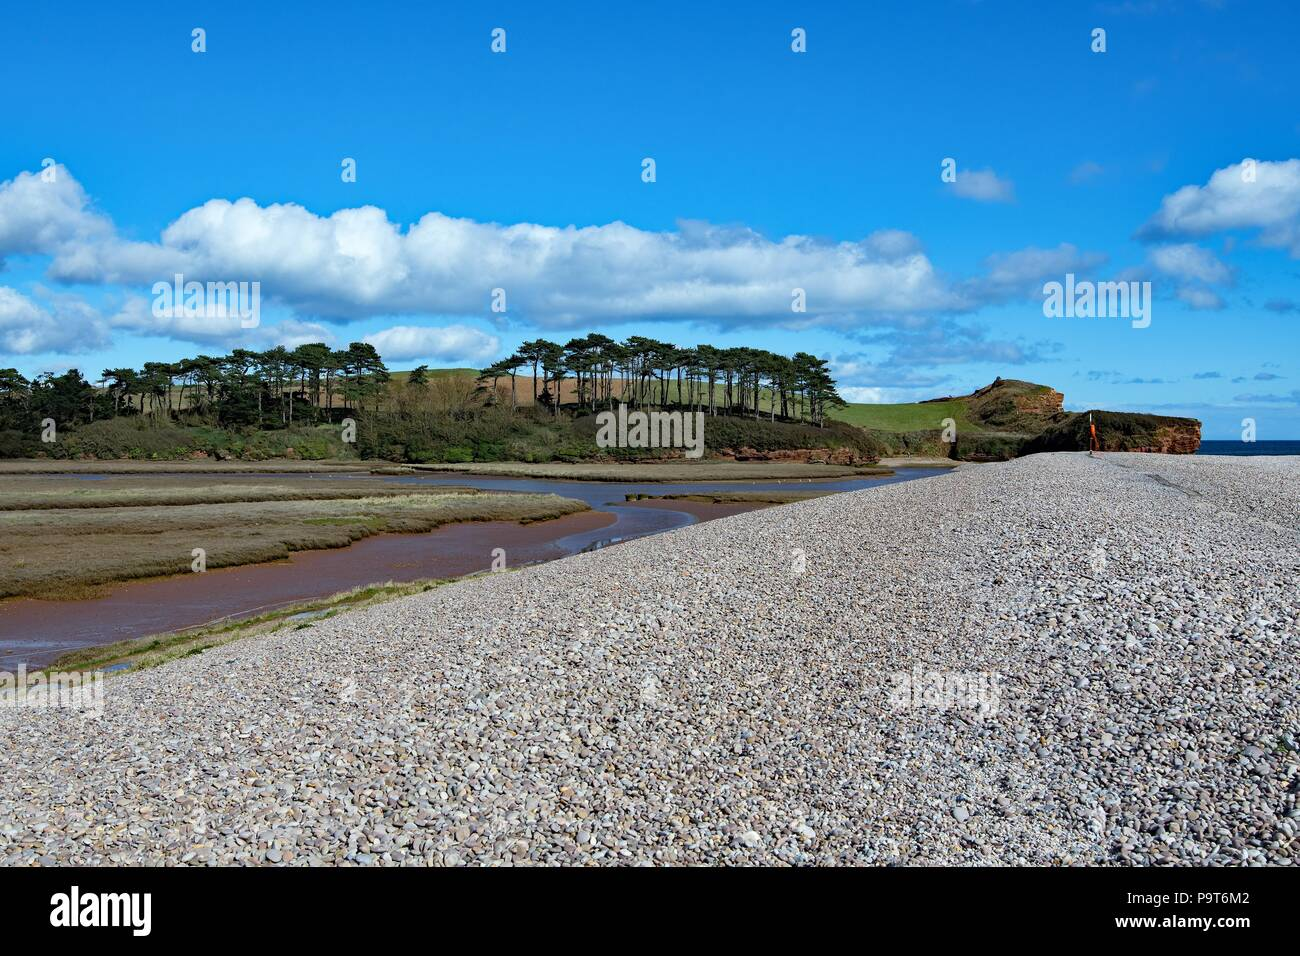 A clear and blue sky day beside the entrance to the River Otter. - Stock Image